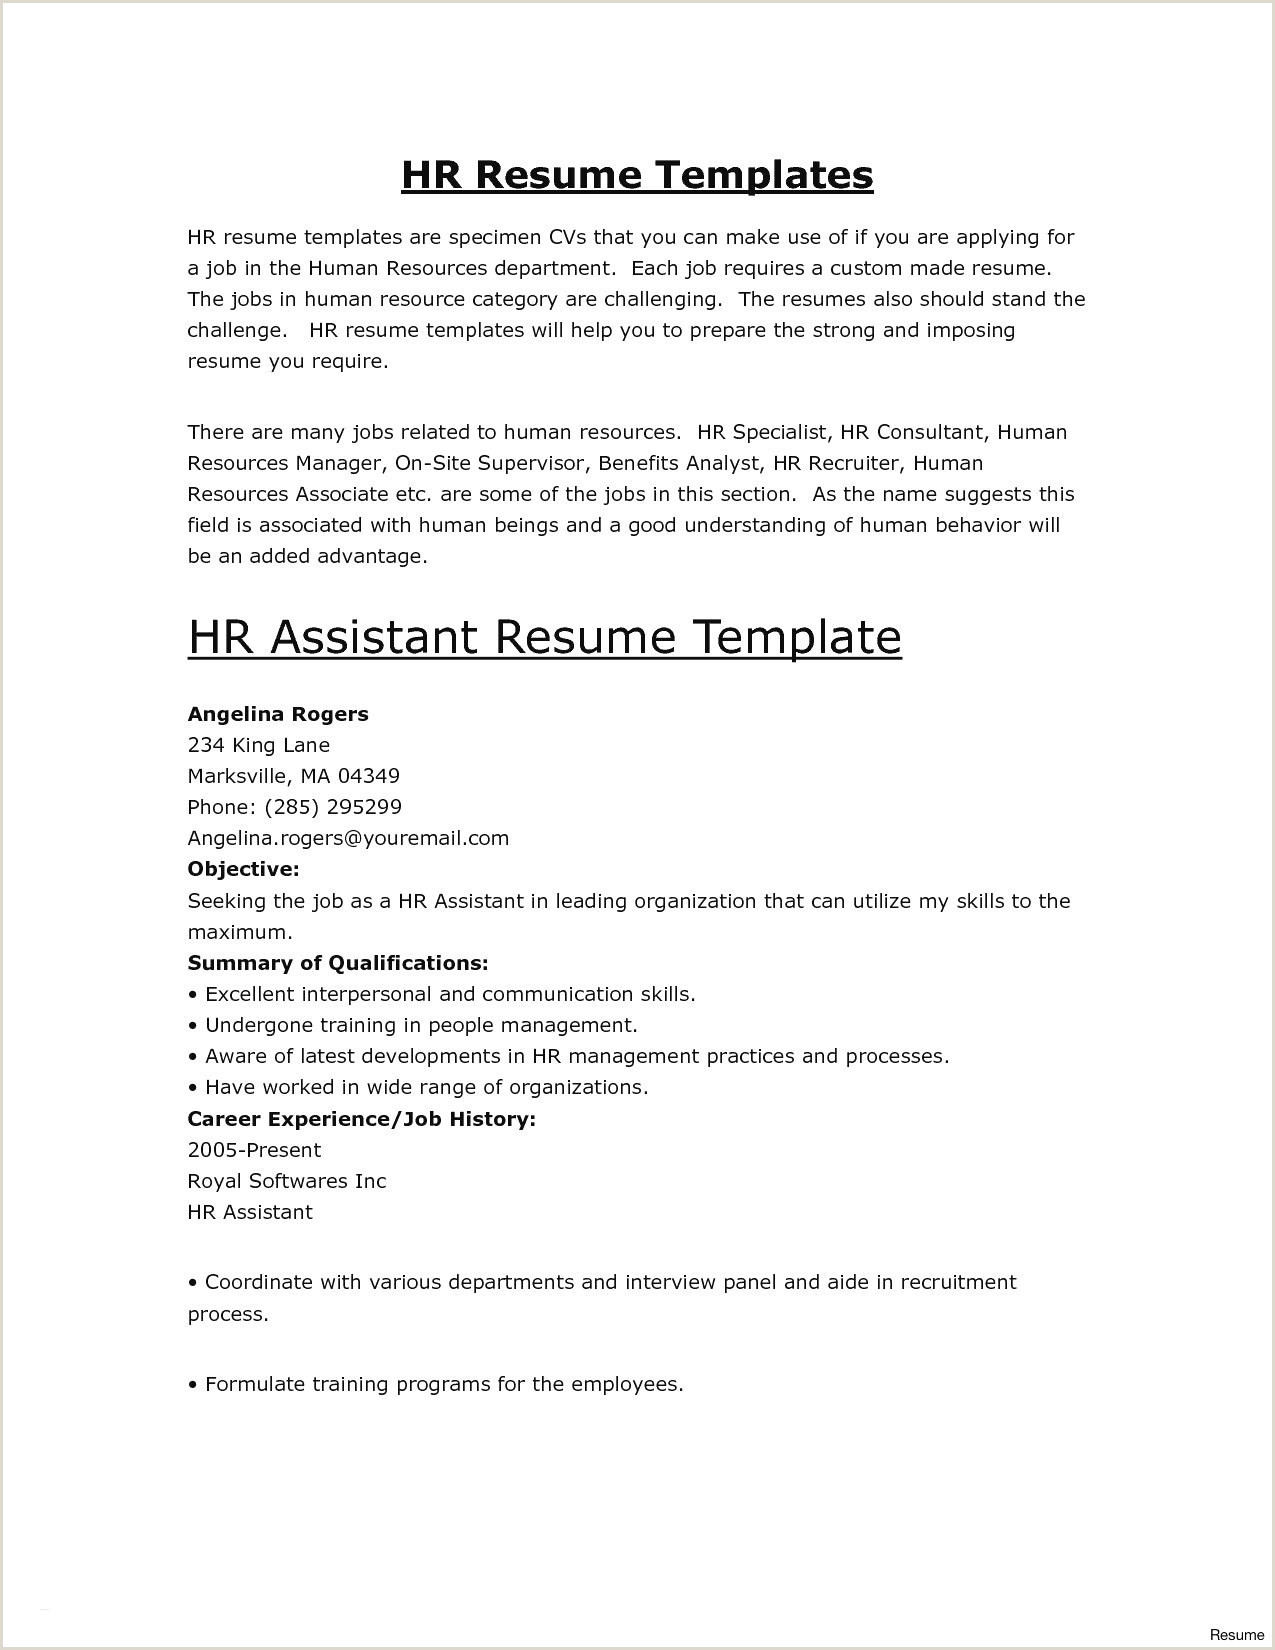 Resume format for Job Interview Pdf Free Download Elegant Free Resume Template Download Pdf